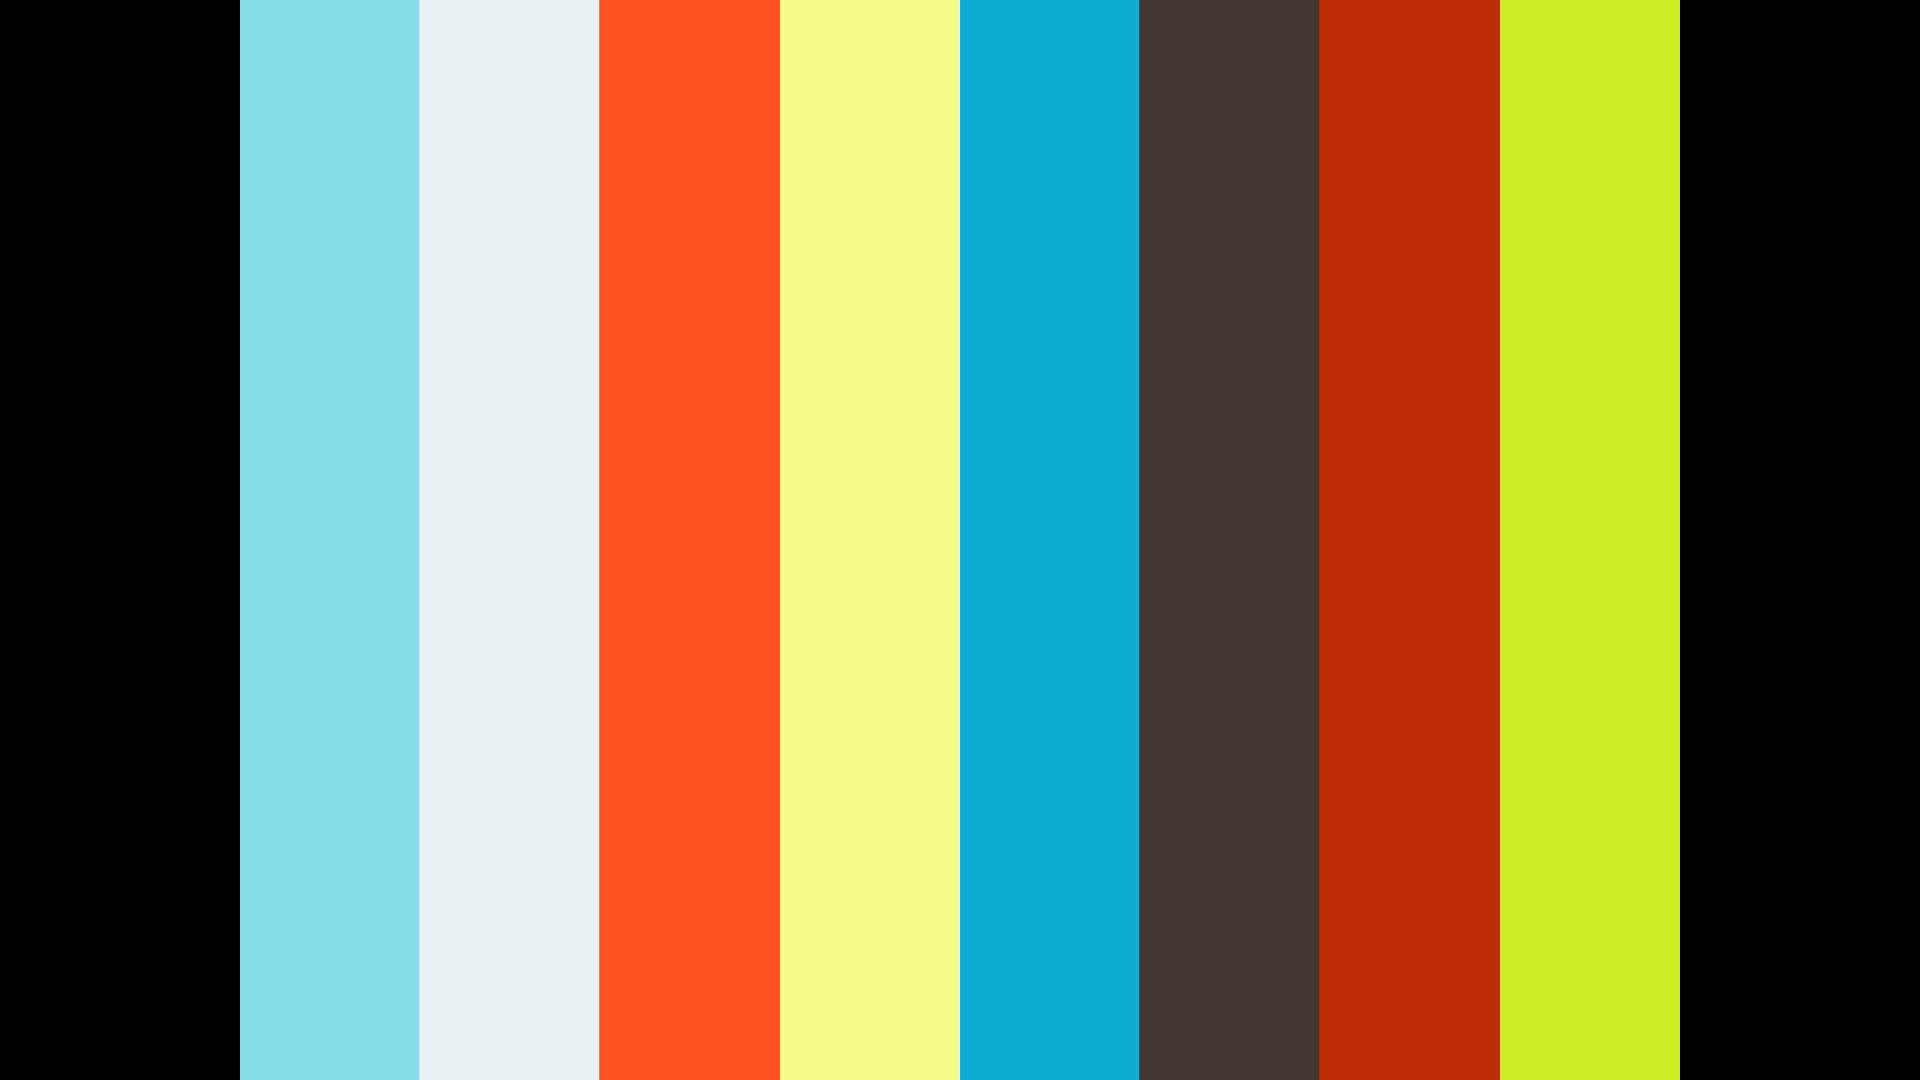 Viewsonic at ChannelNext East 2019